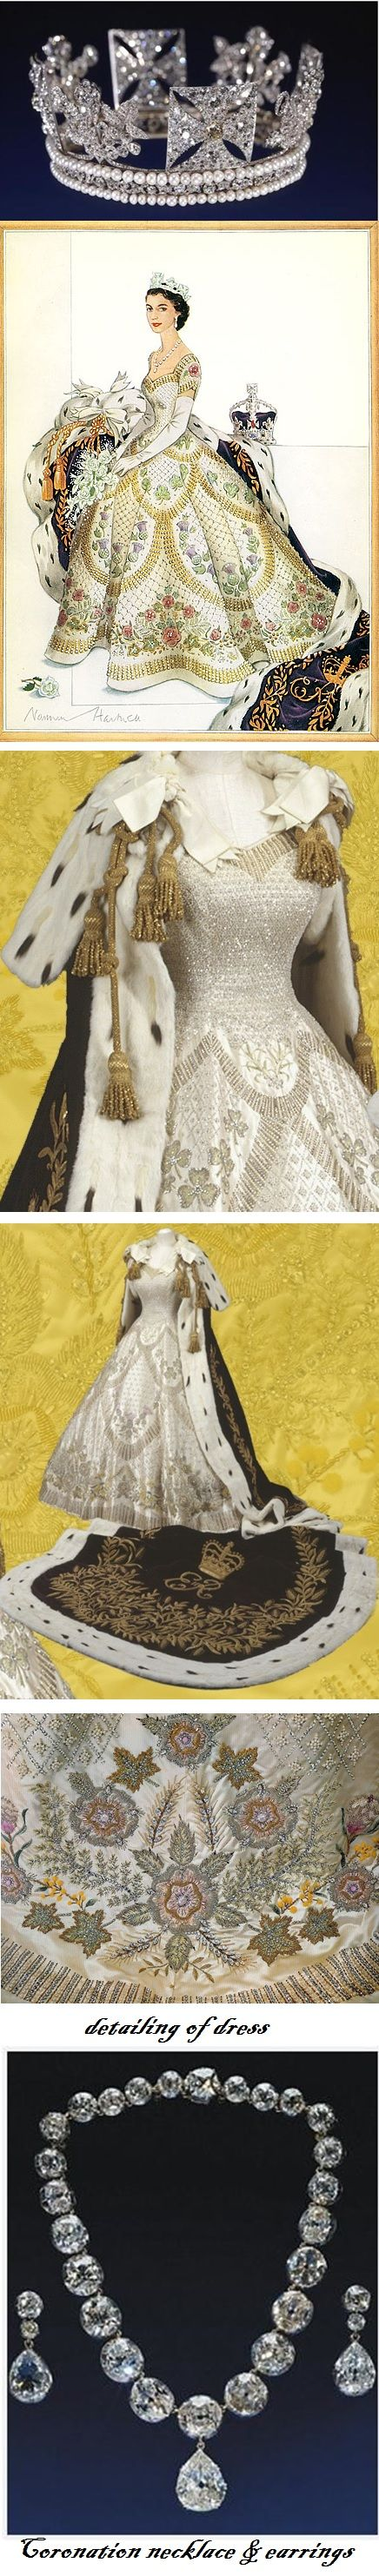 QUEEN ELIZABETH II |  Coronation gown, jewelry and crown.